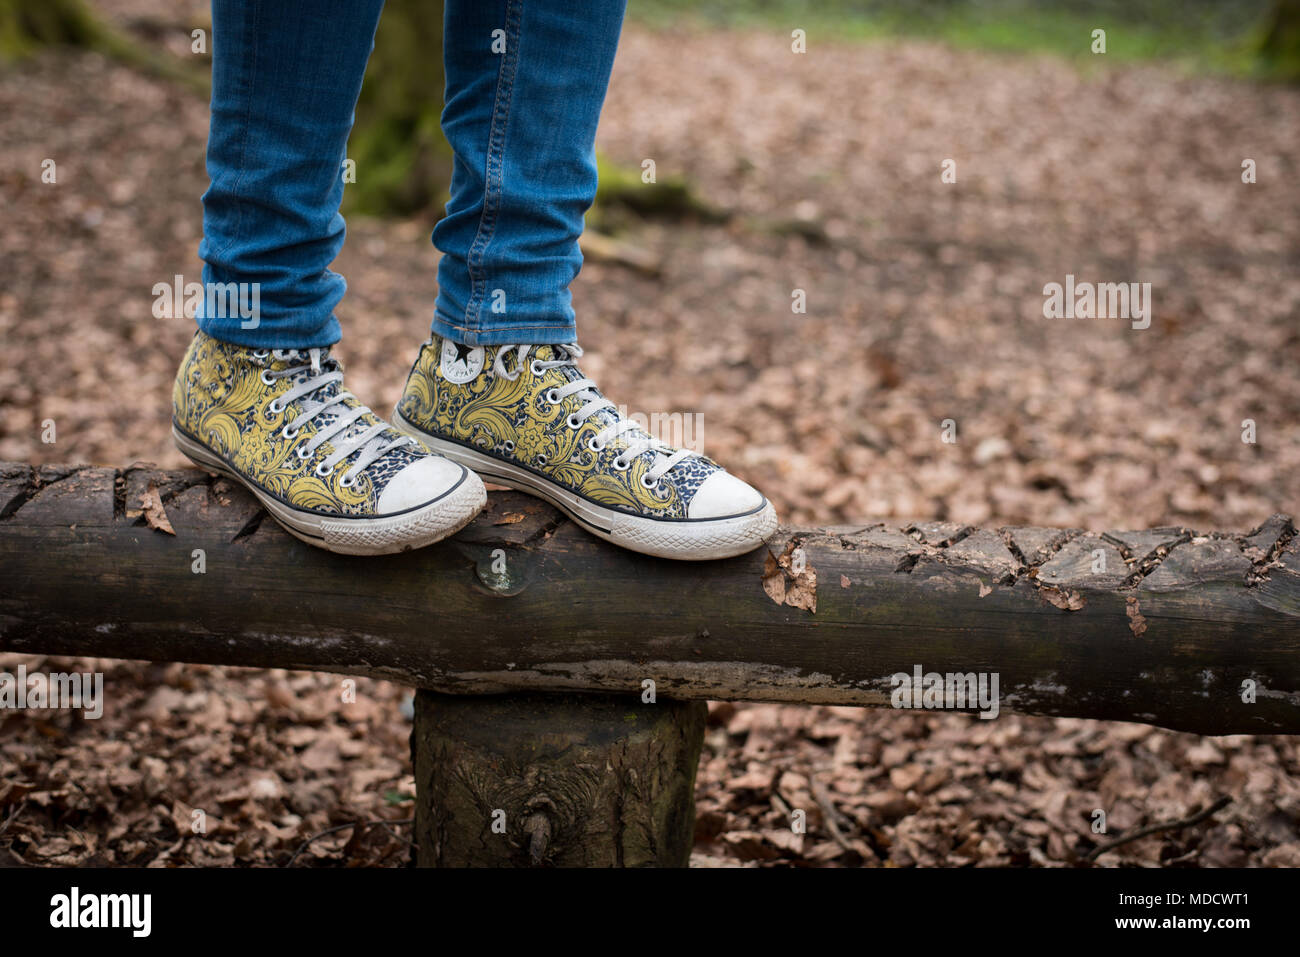 e76ced051438 View of girl s feet in yellow converse trainers as she balances on a log in  a children s playground on Dunstable Downs